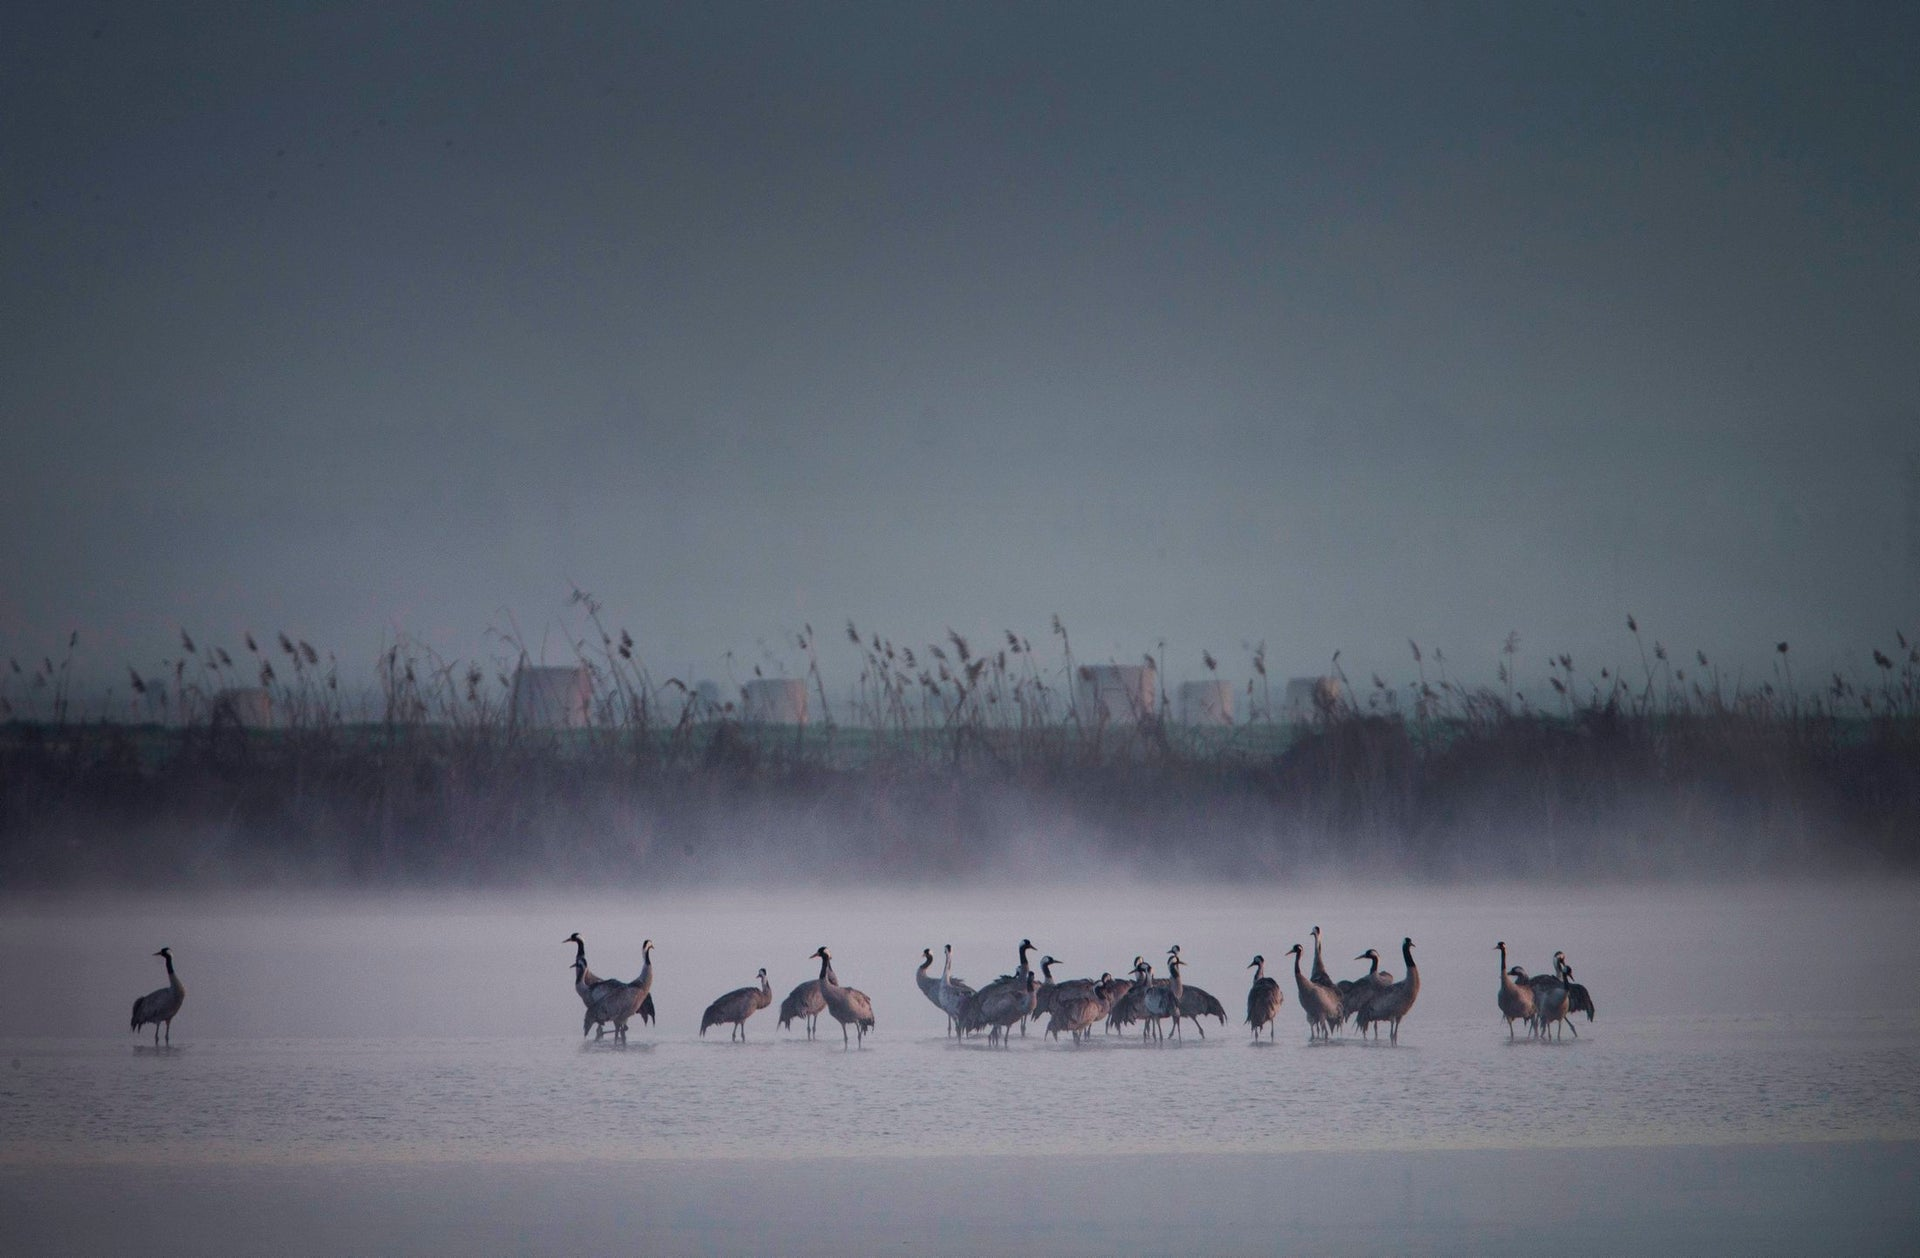 Migrating cranes flock at the Hula Lake conservation area, north of the Sea of Galilee, in northern Israel, February 14, 2016.